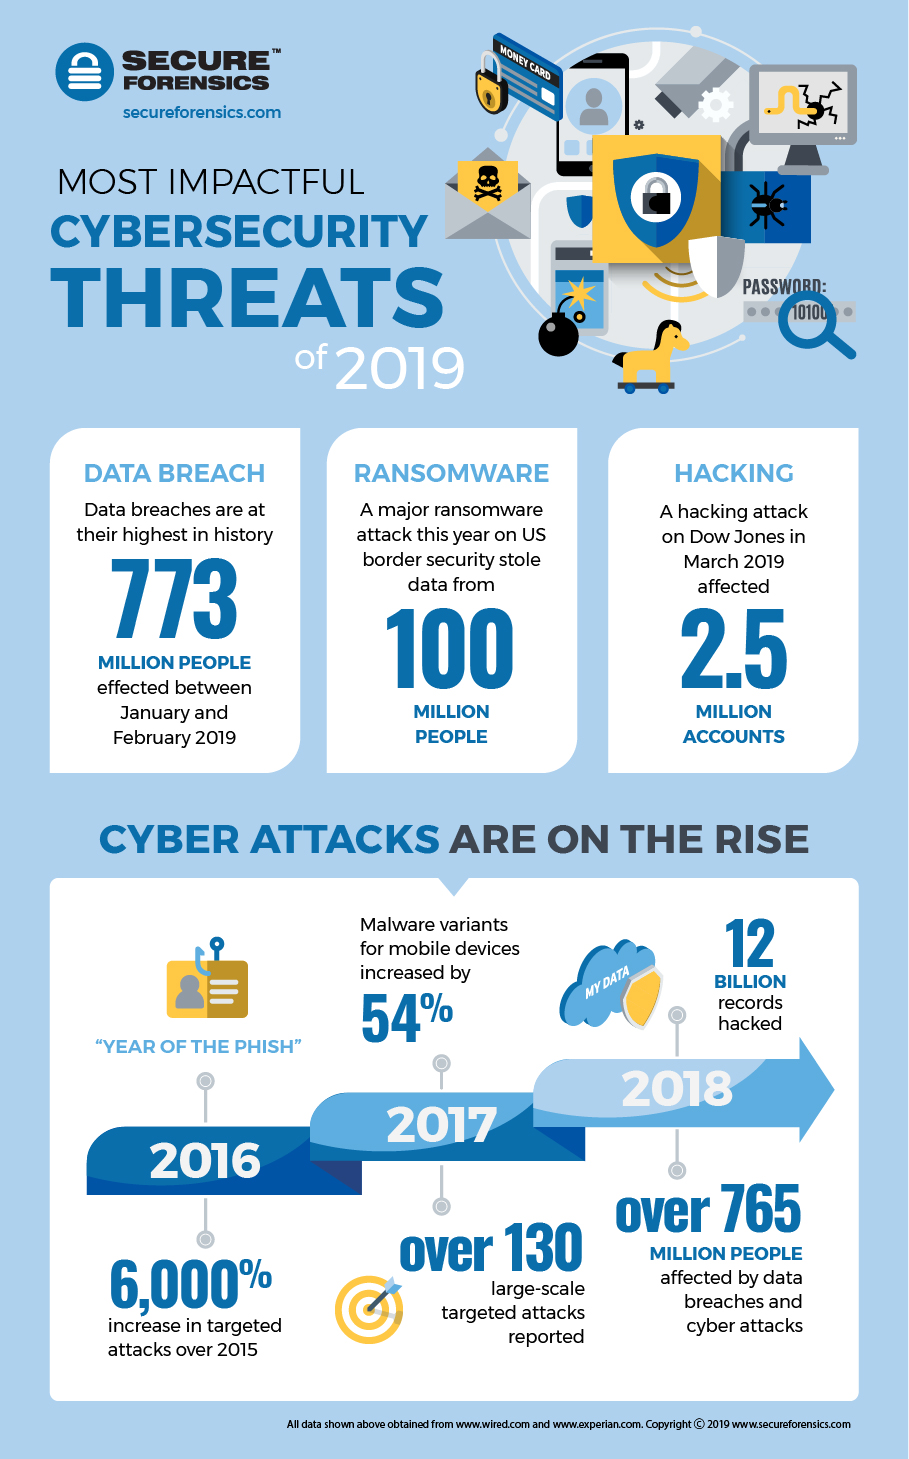 Impactful Cybersecurity Threats of 2019